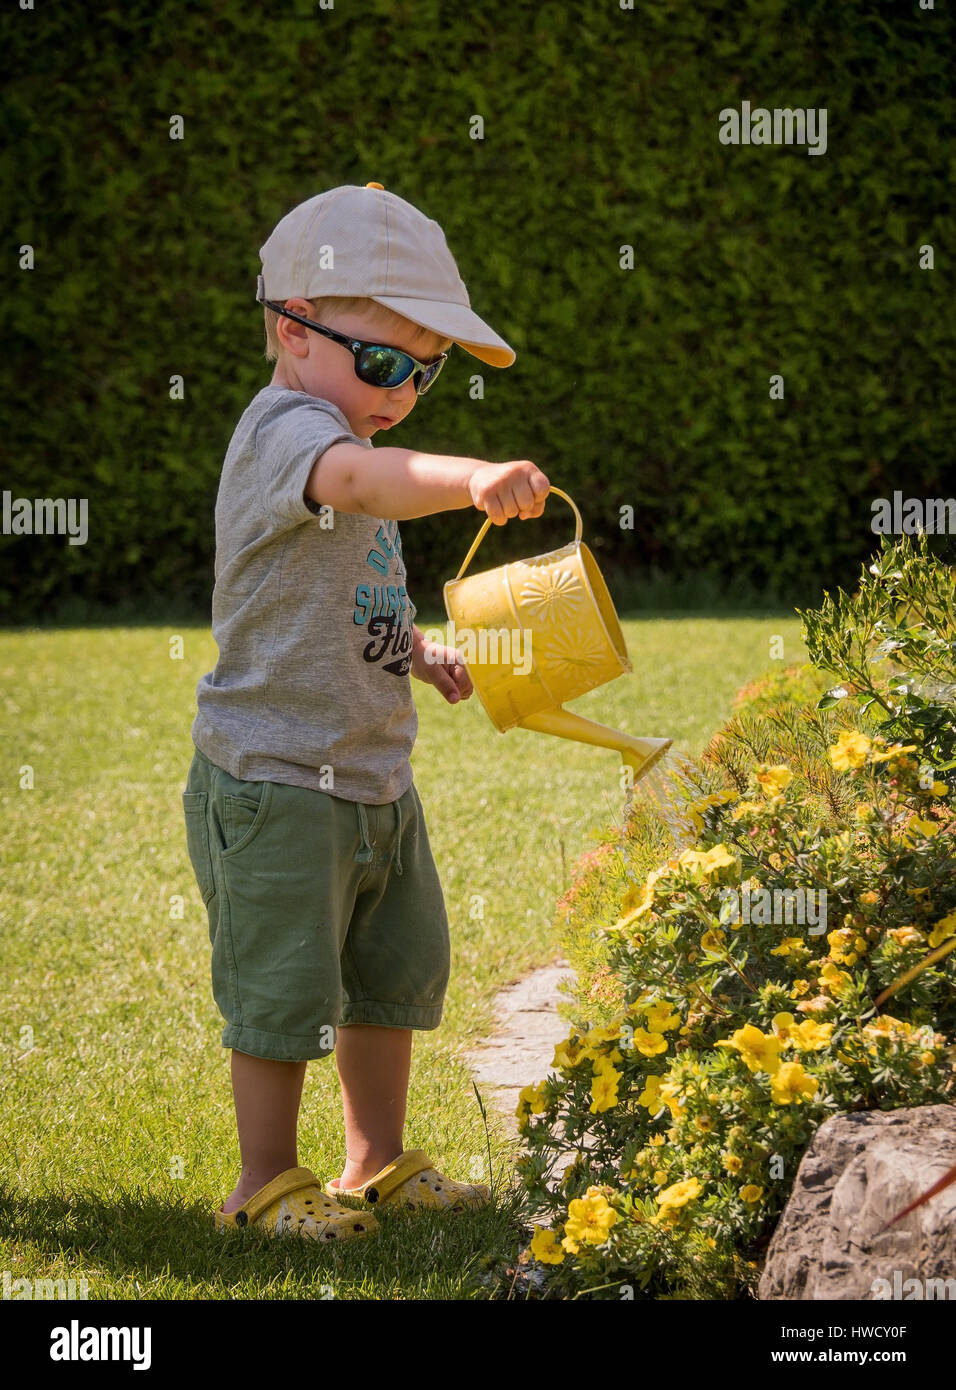 A small boy squirts the flowers on a hot day in summer with a watering can, Ein kleiner Bub spritzt mit einer Gießkanne - Stock Image